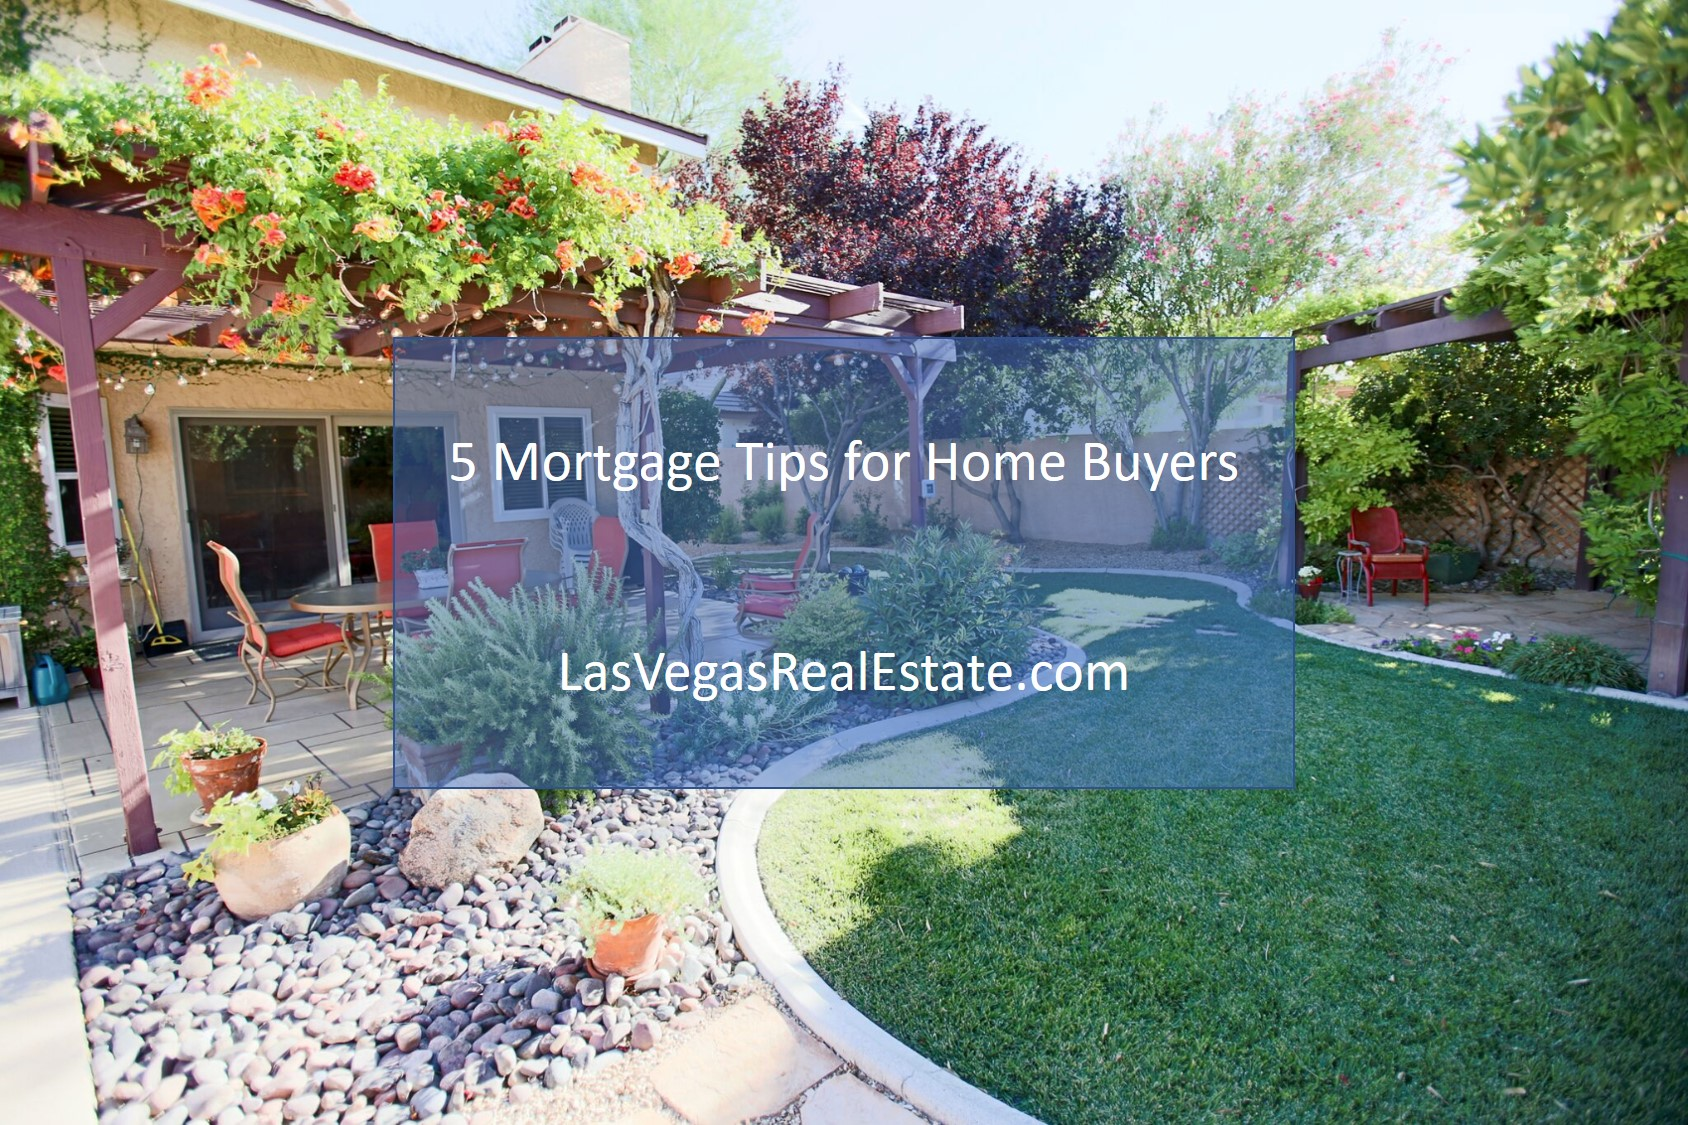 5 Mortgage Tips for Home Buyers - LasVegasRealEstate.com